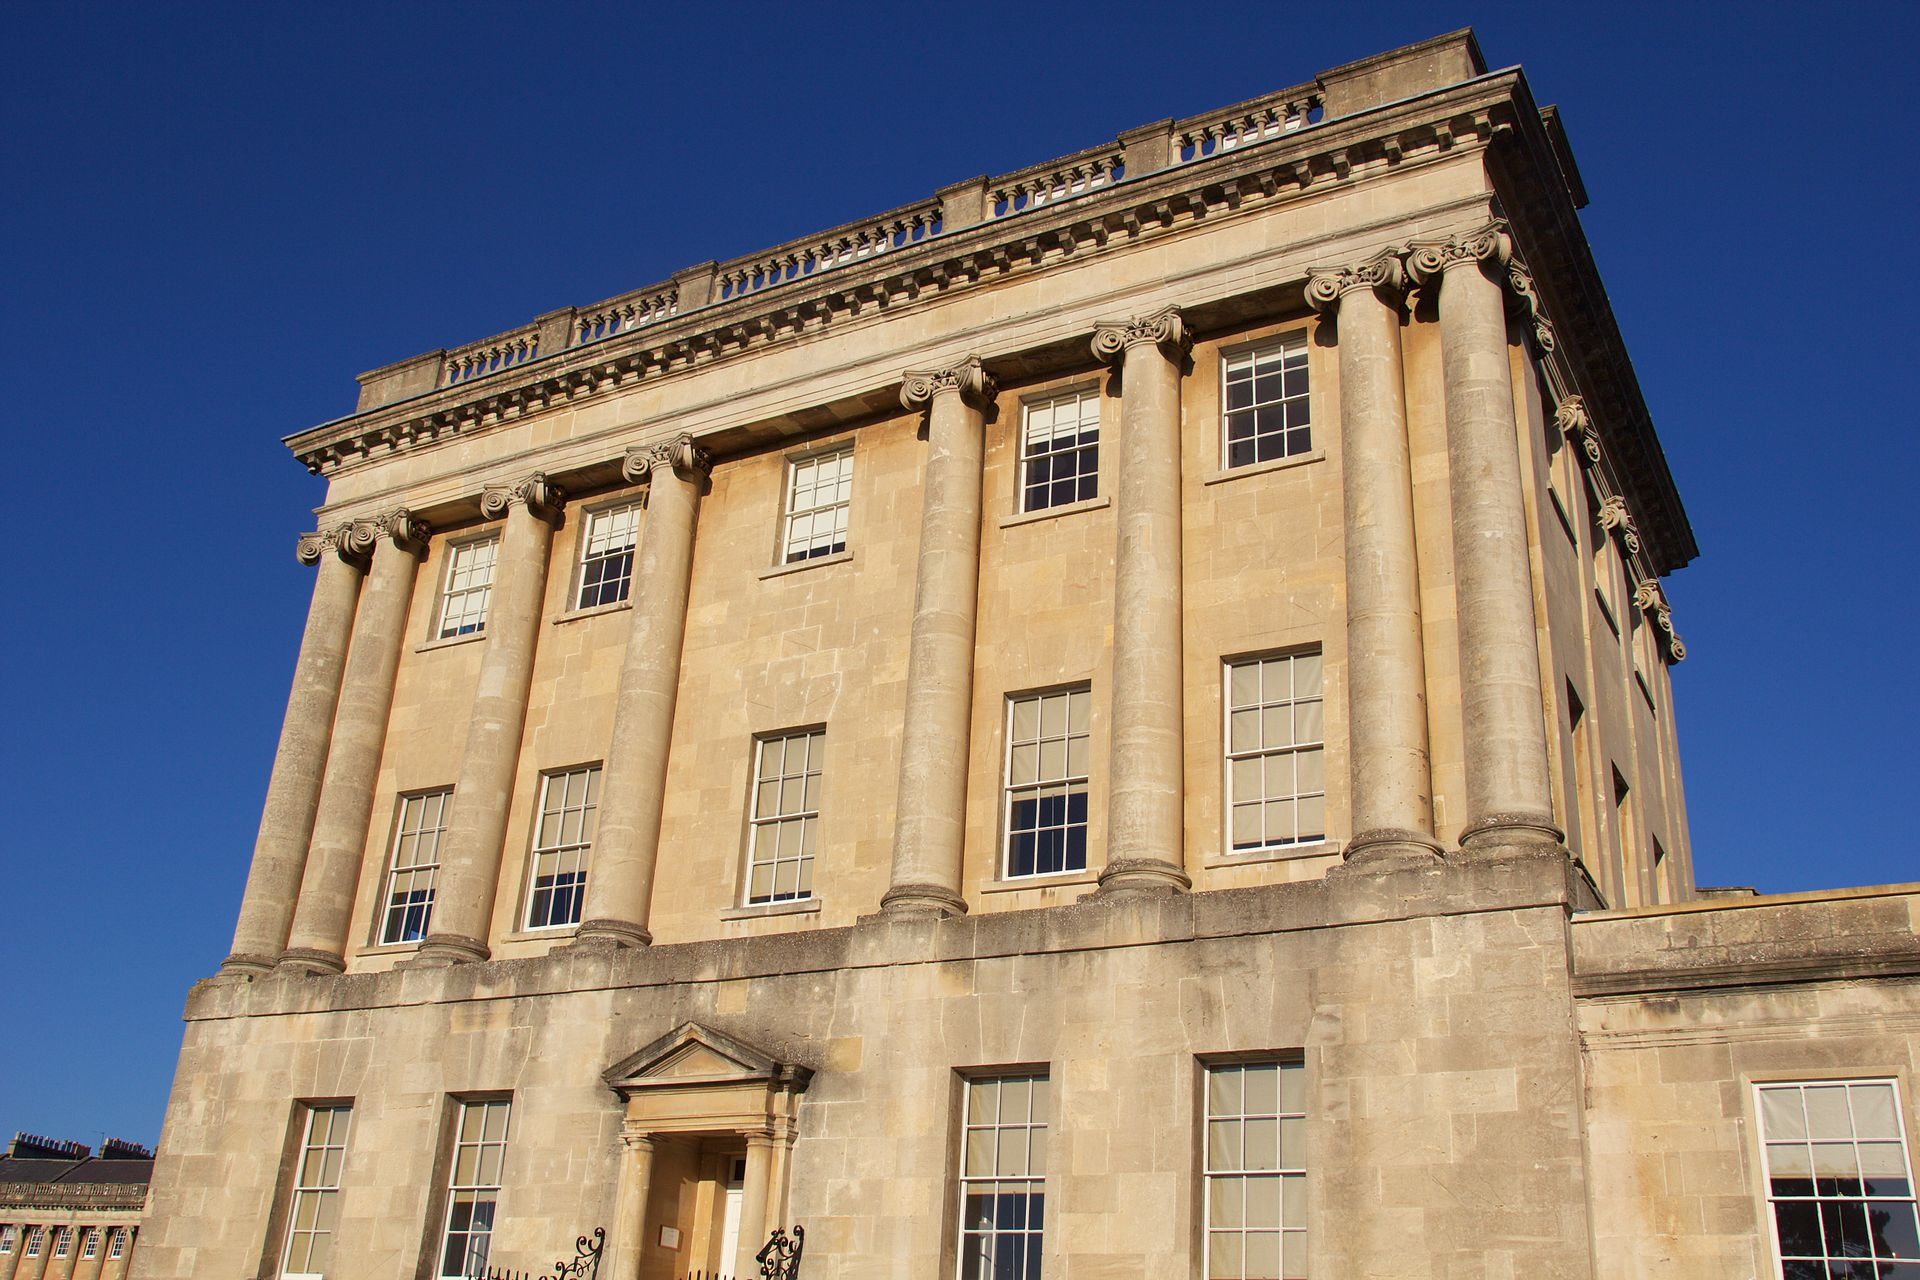 Royal Crescent, Bath 2014 09.jpg